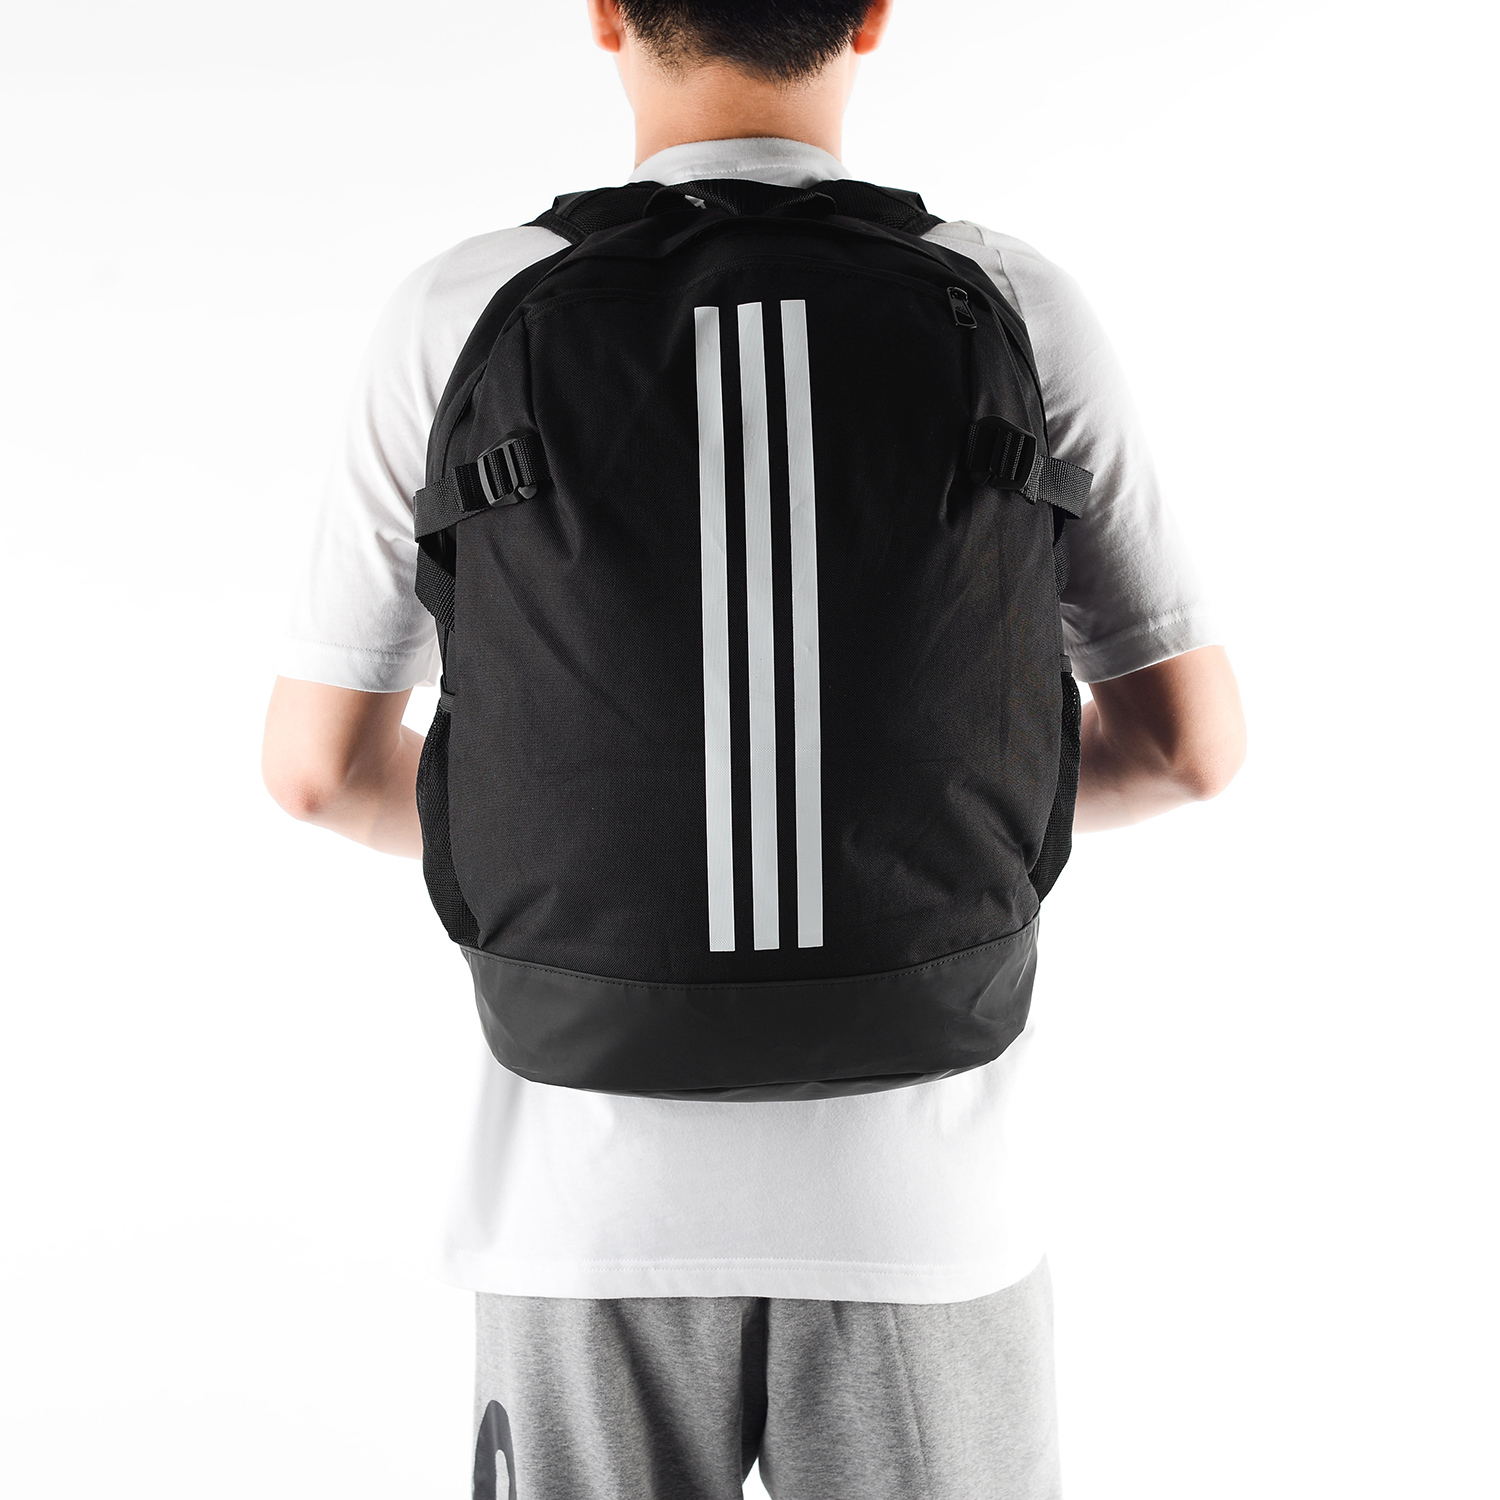 buy adidas bags for girls gt off66 discounted